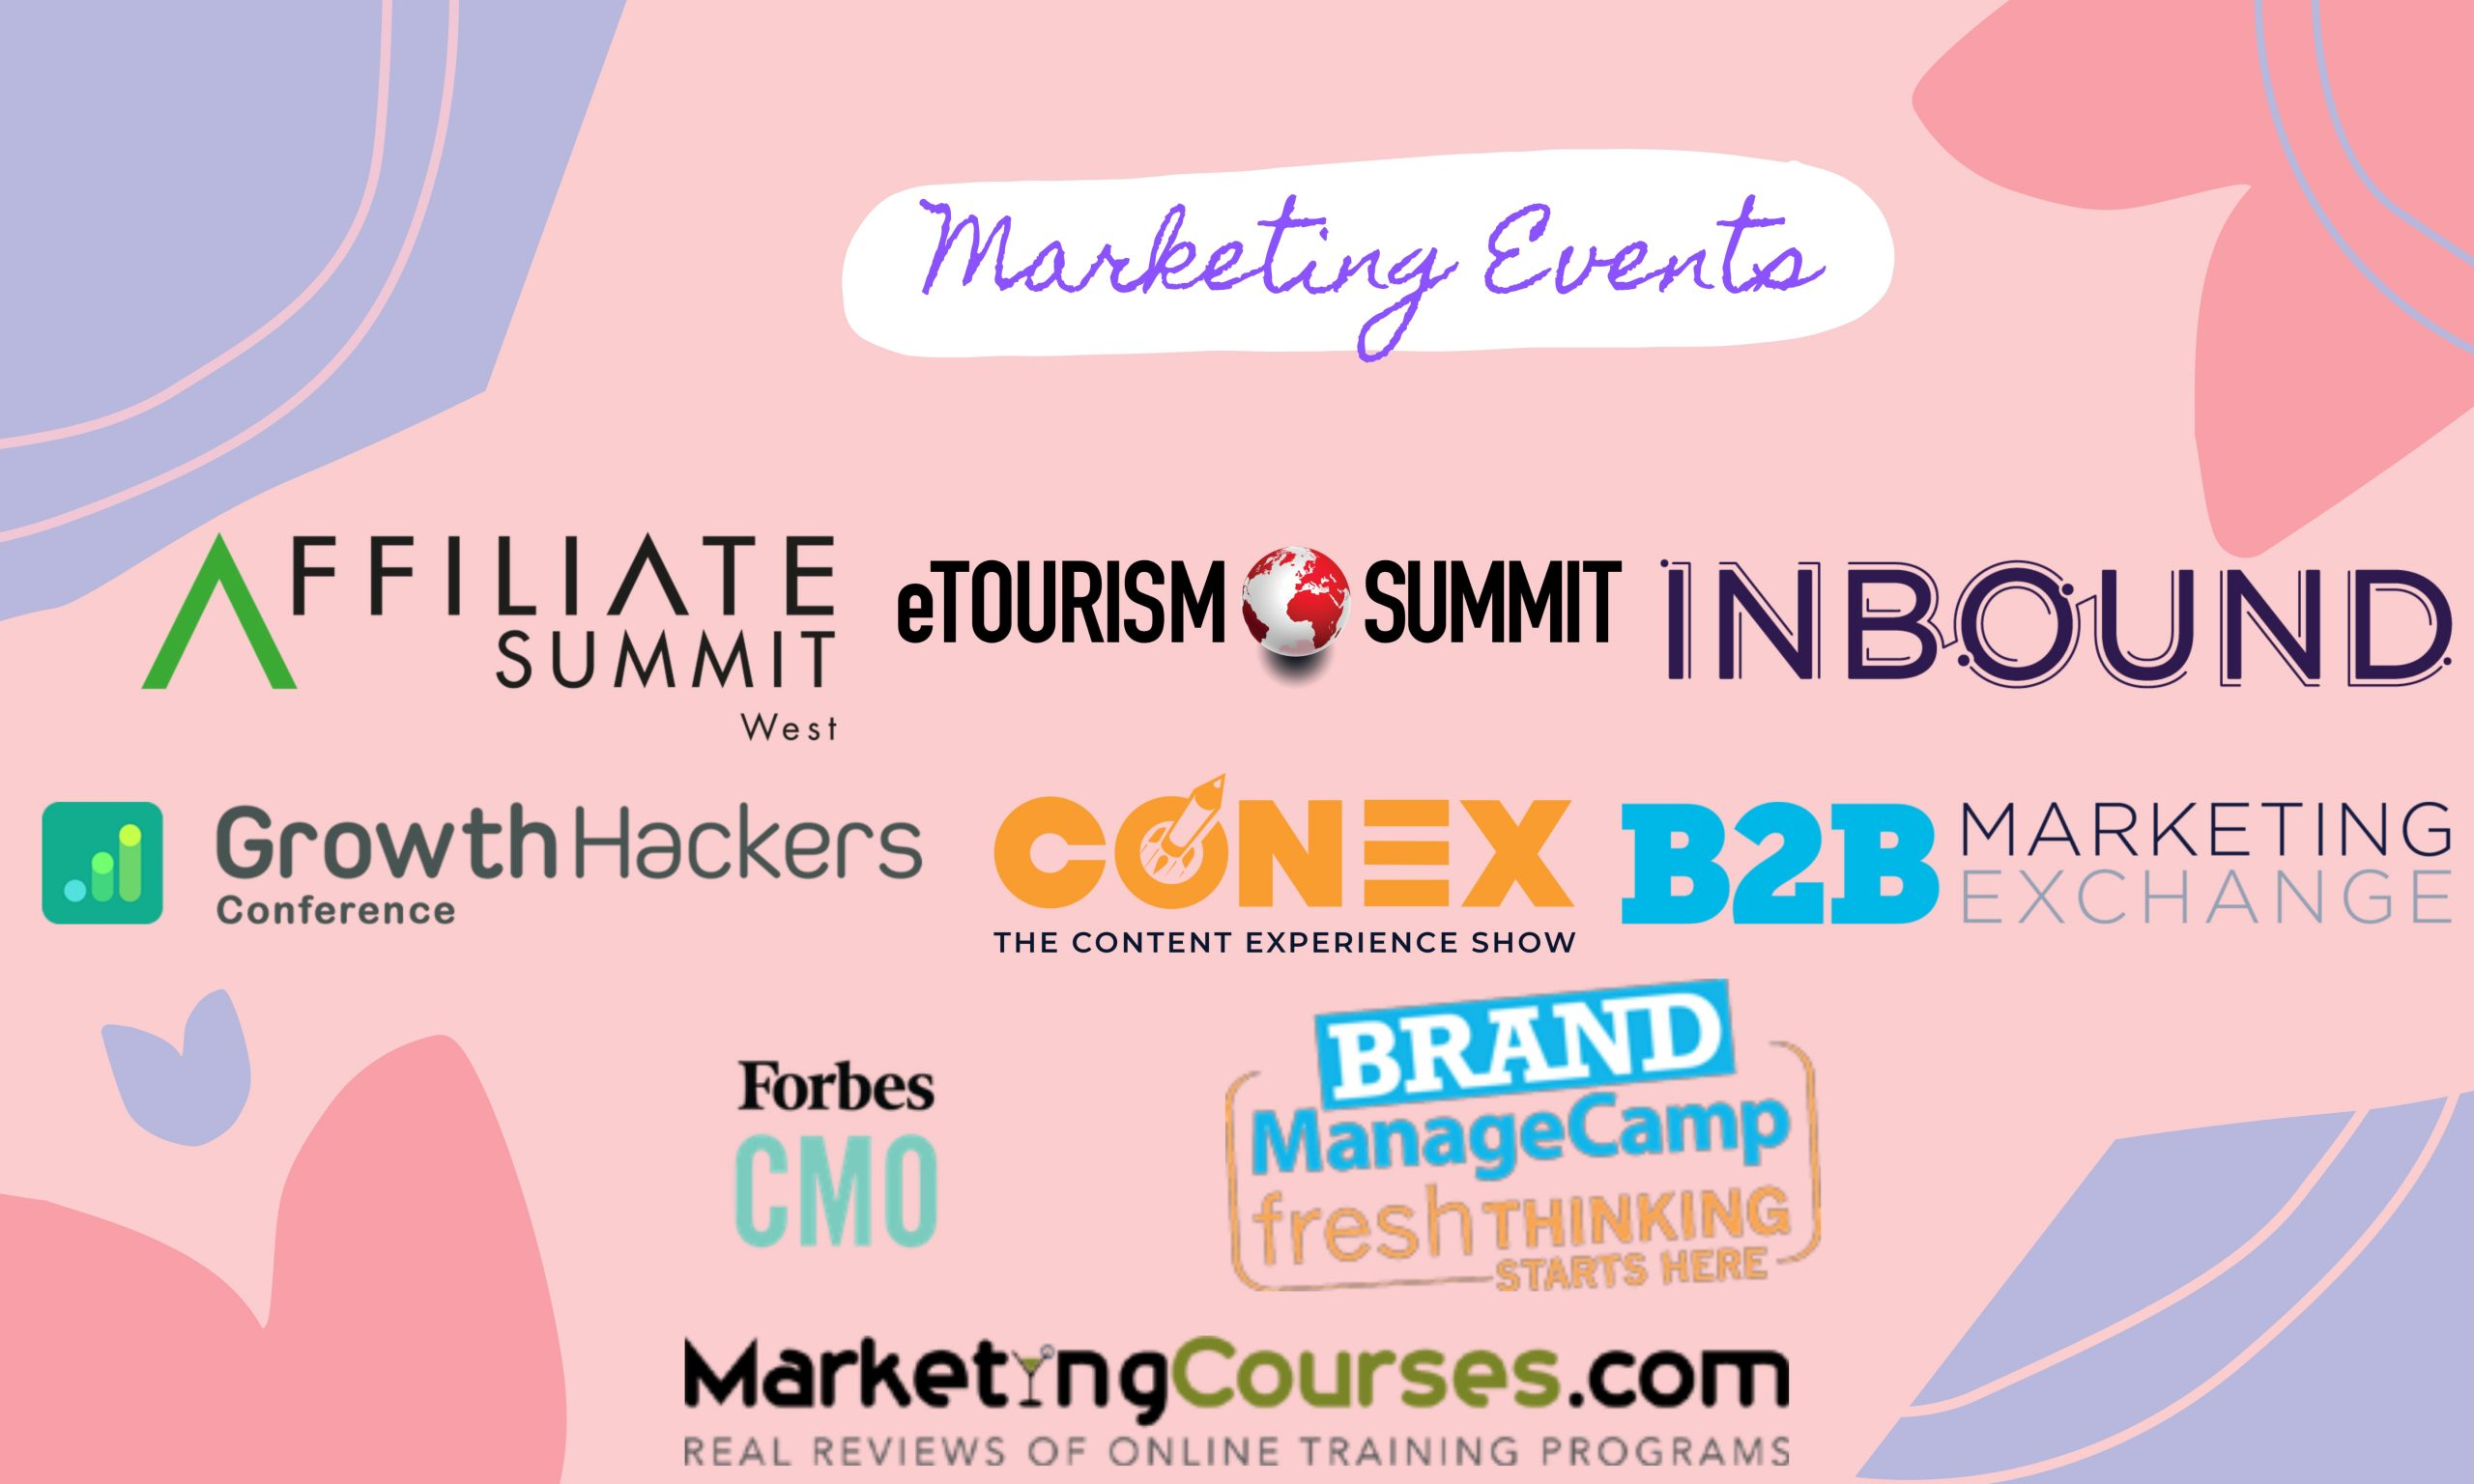 Best Marketing Events in the USA